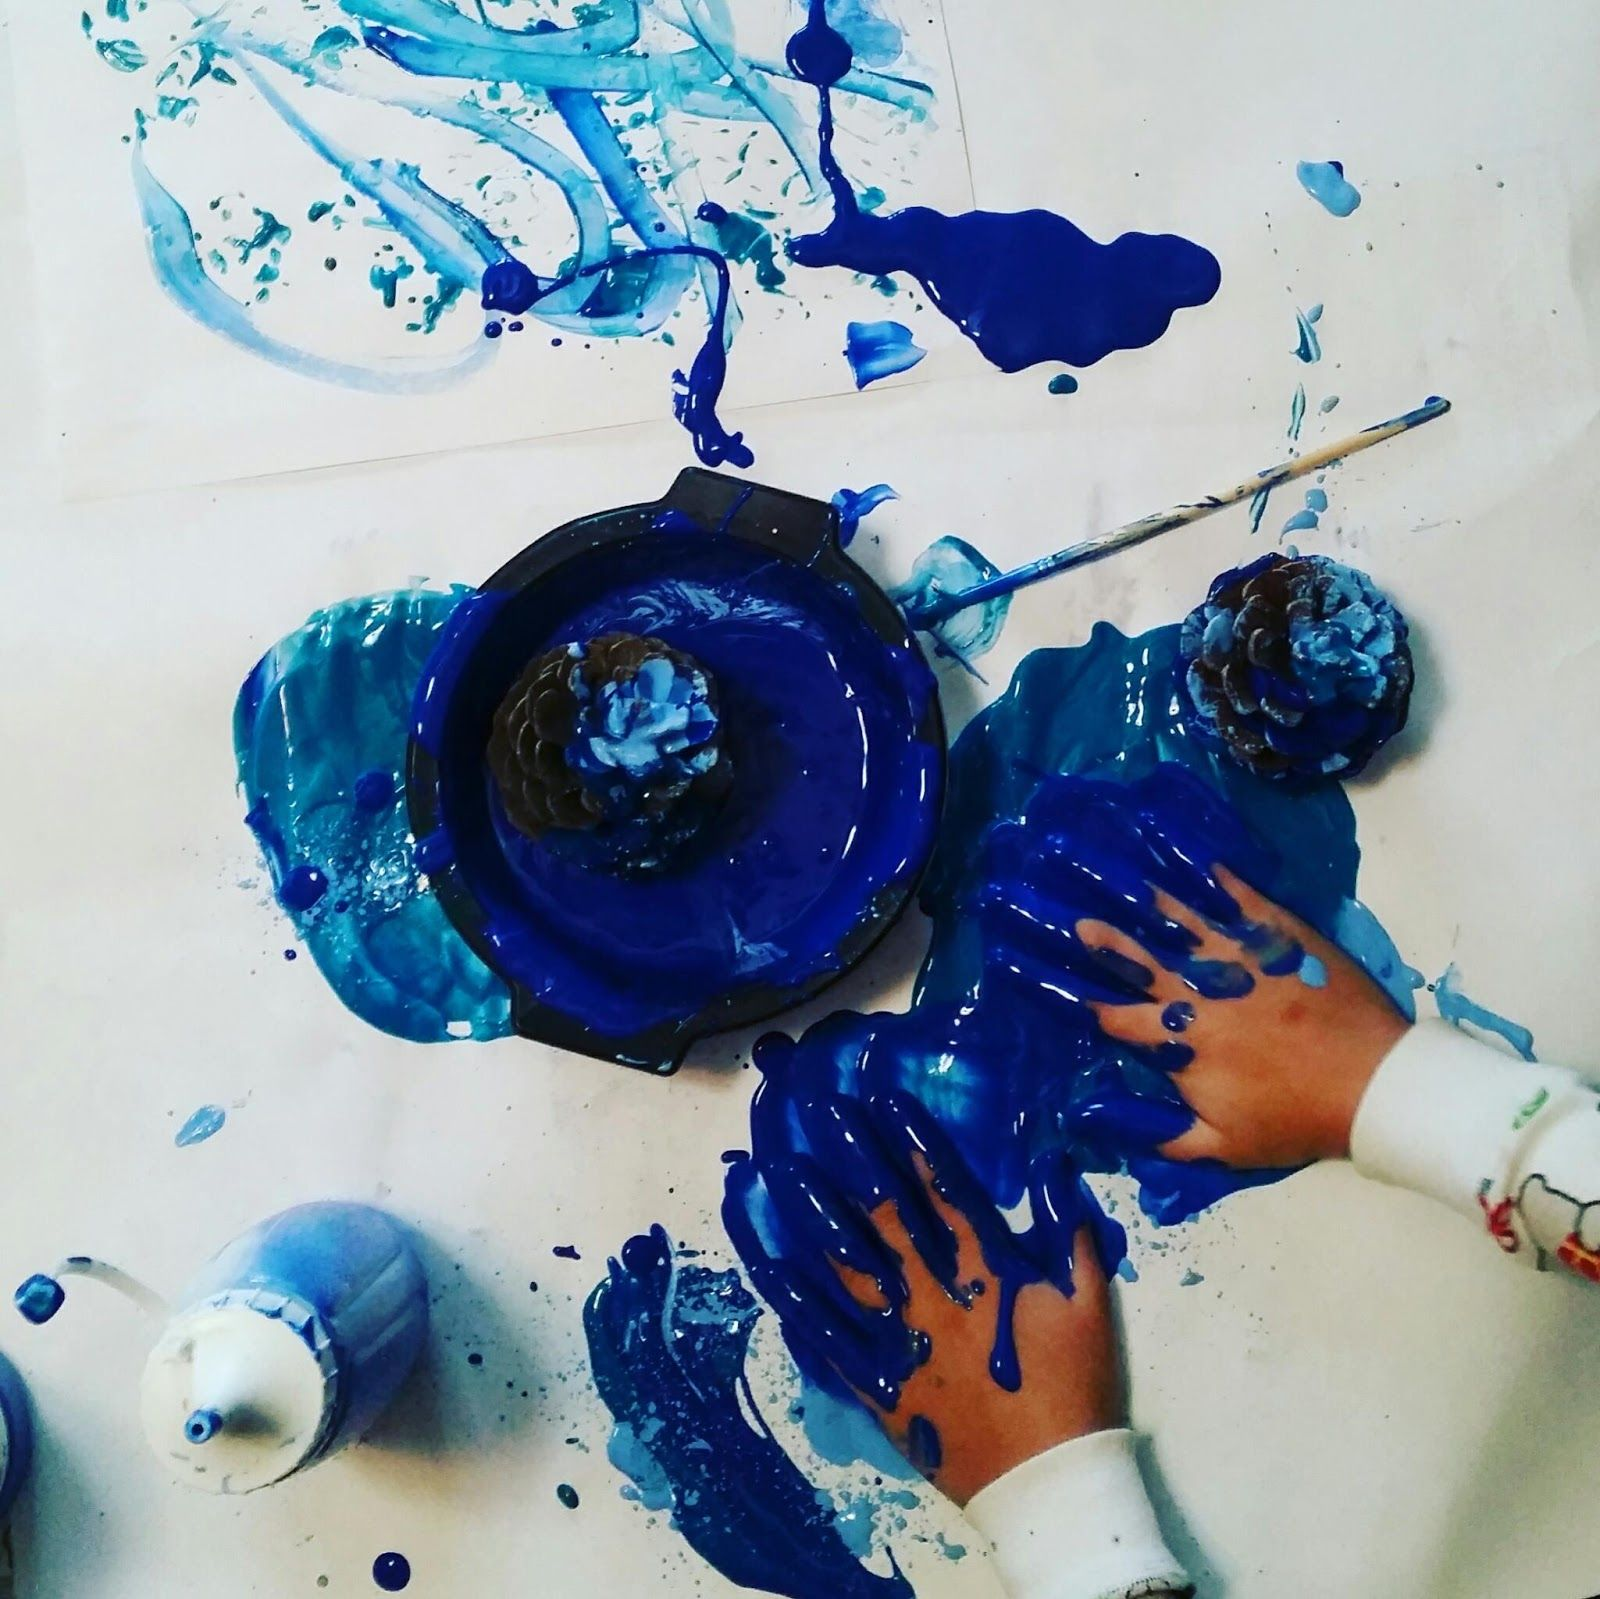 Sometimes it's just so important to let kids experience the process of art. When we stop telling them what to create, we allow them to fully...